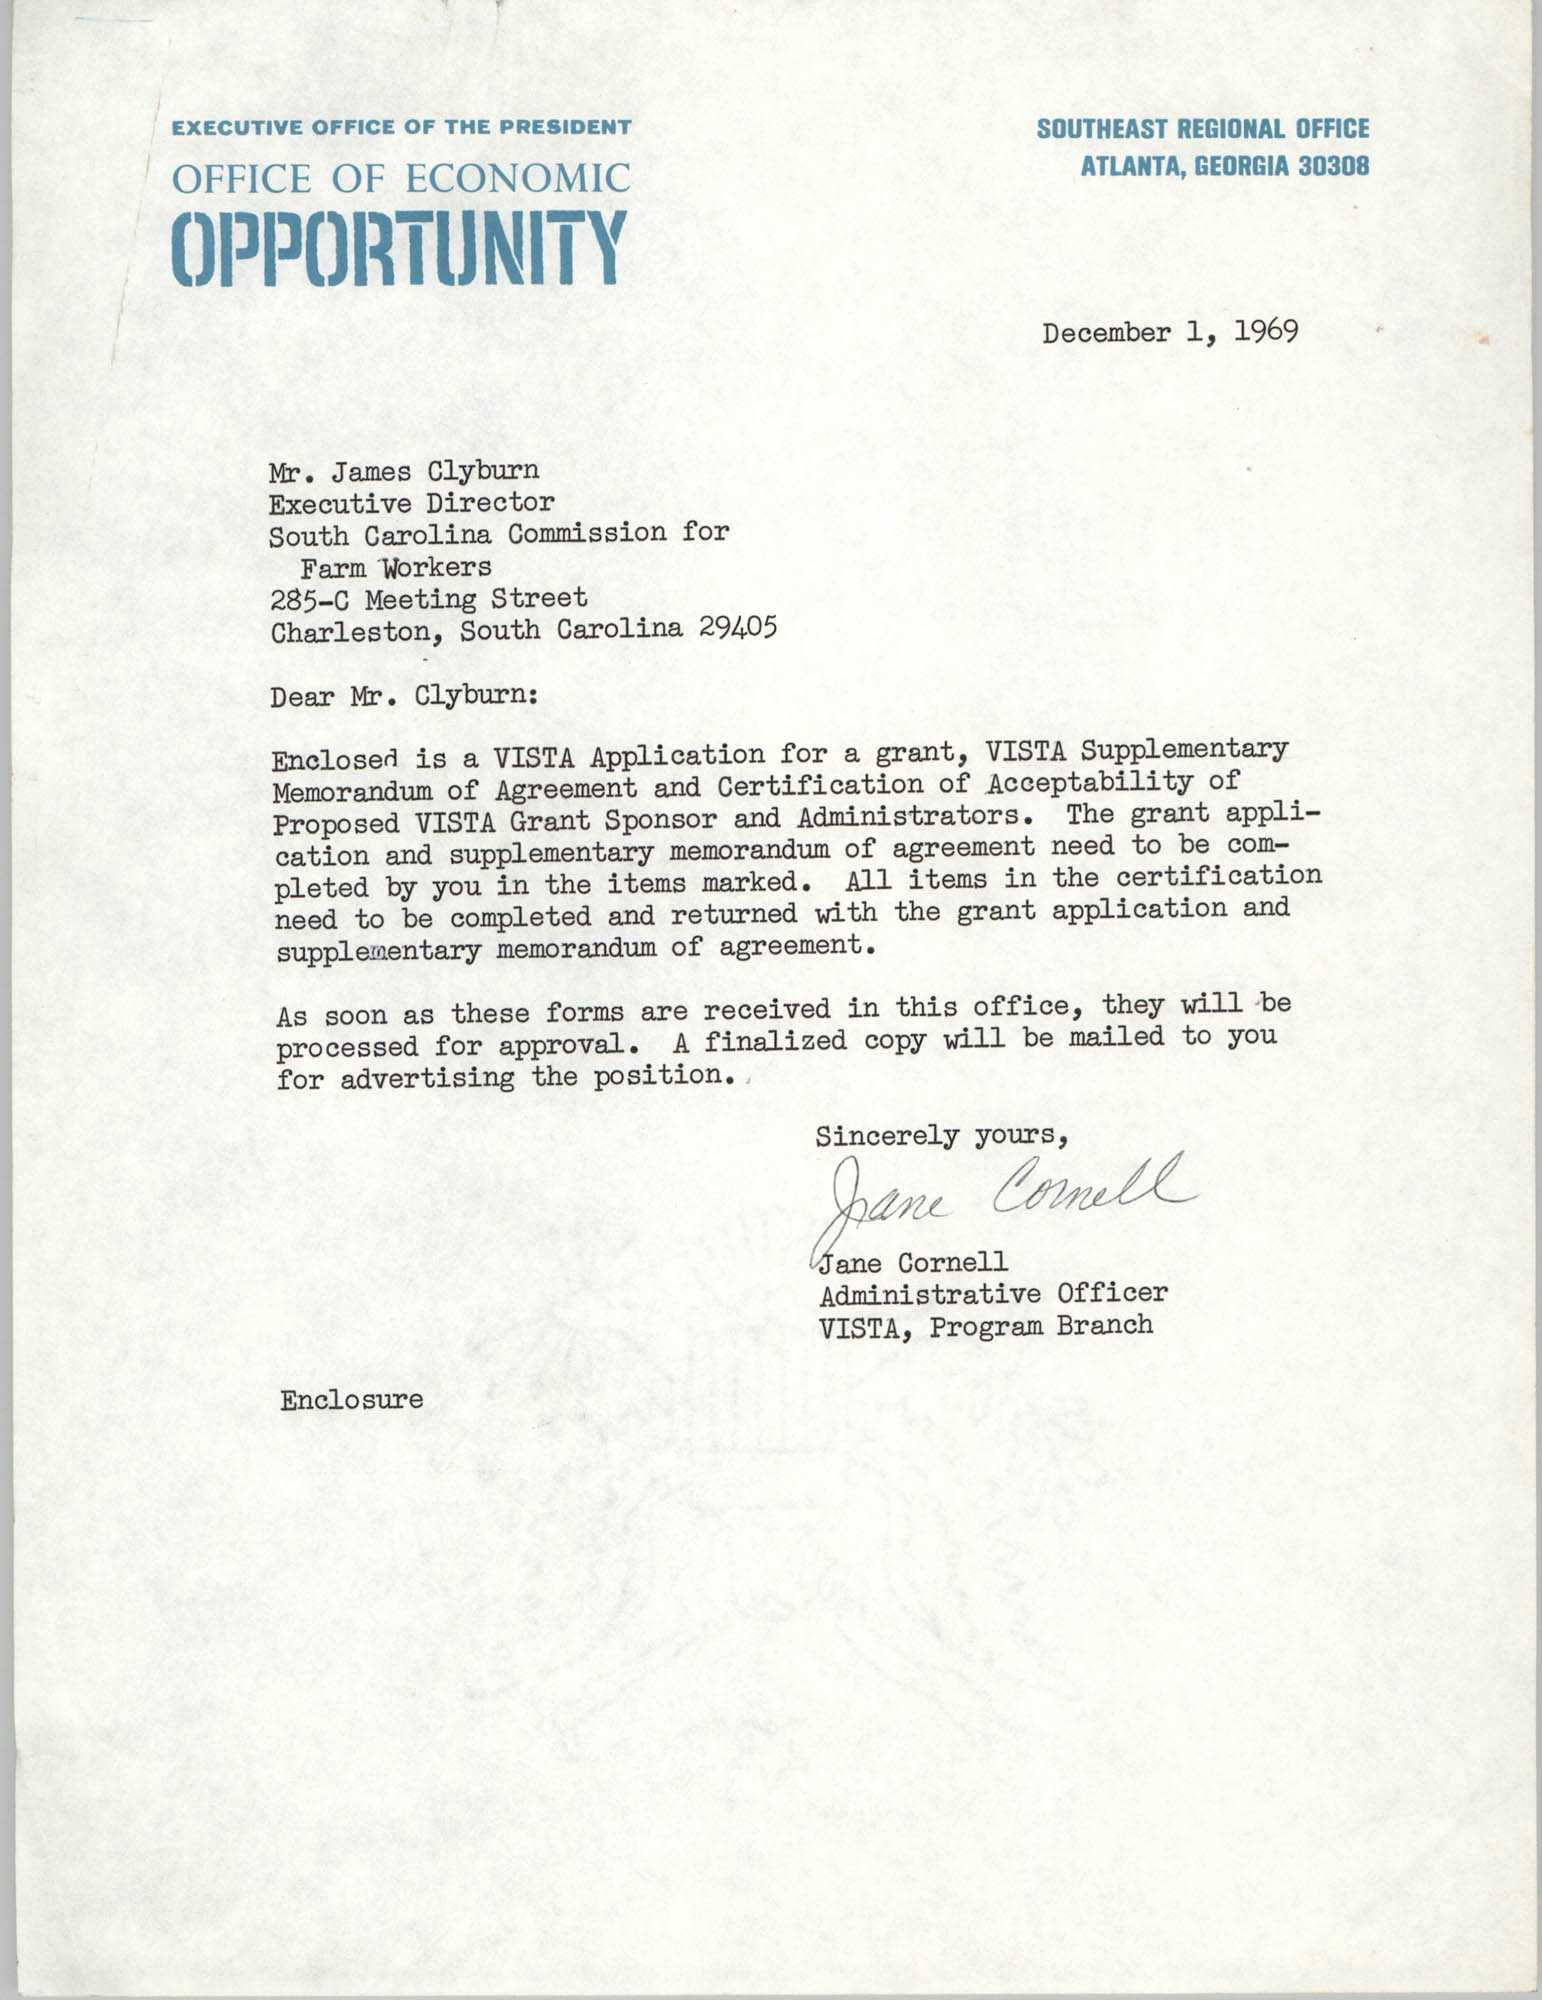 Letter from Jane Cornell to James Clyburn, December 1, 1969